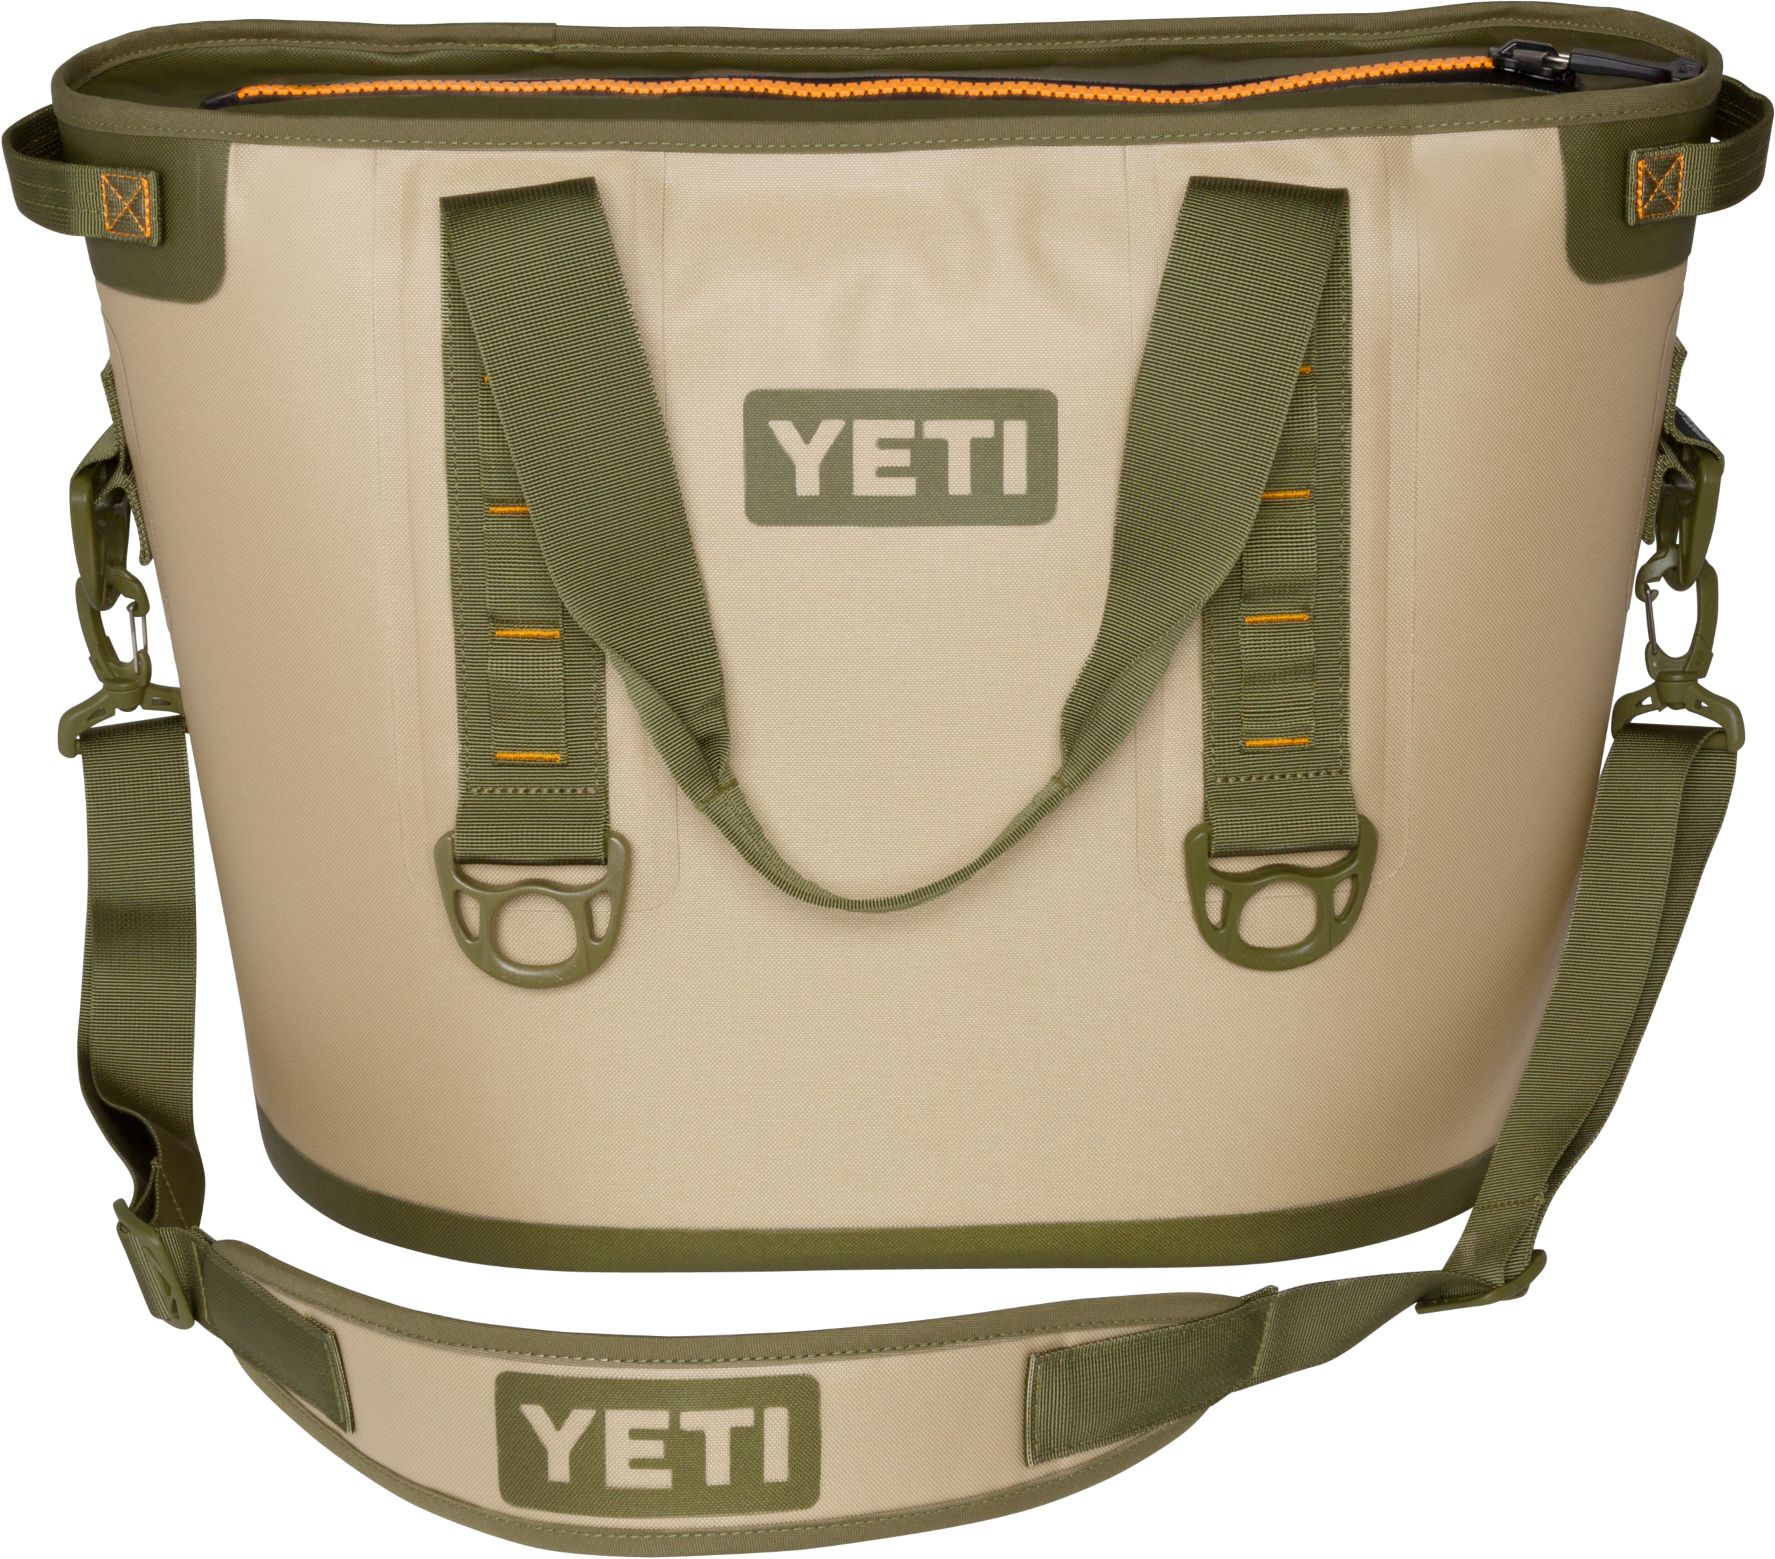 YETI Hopper 30 Cooler| DICK'S Sporting Goods